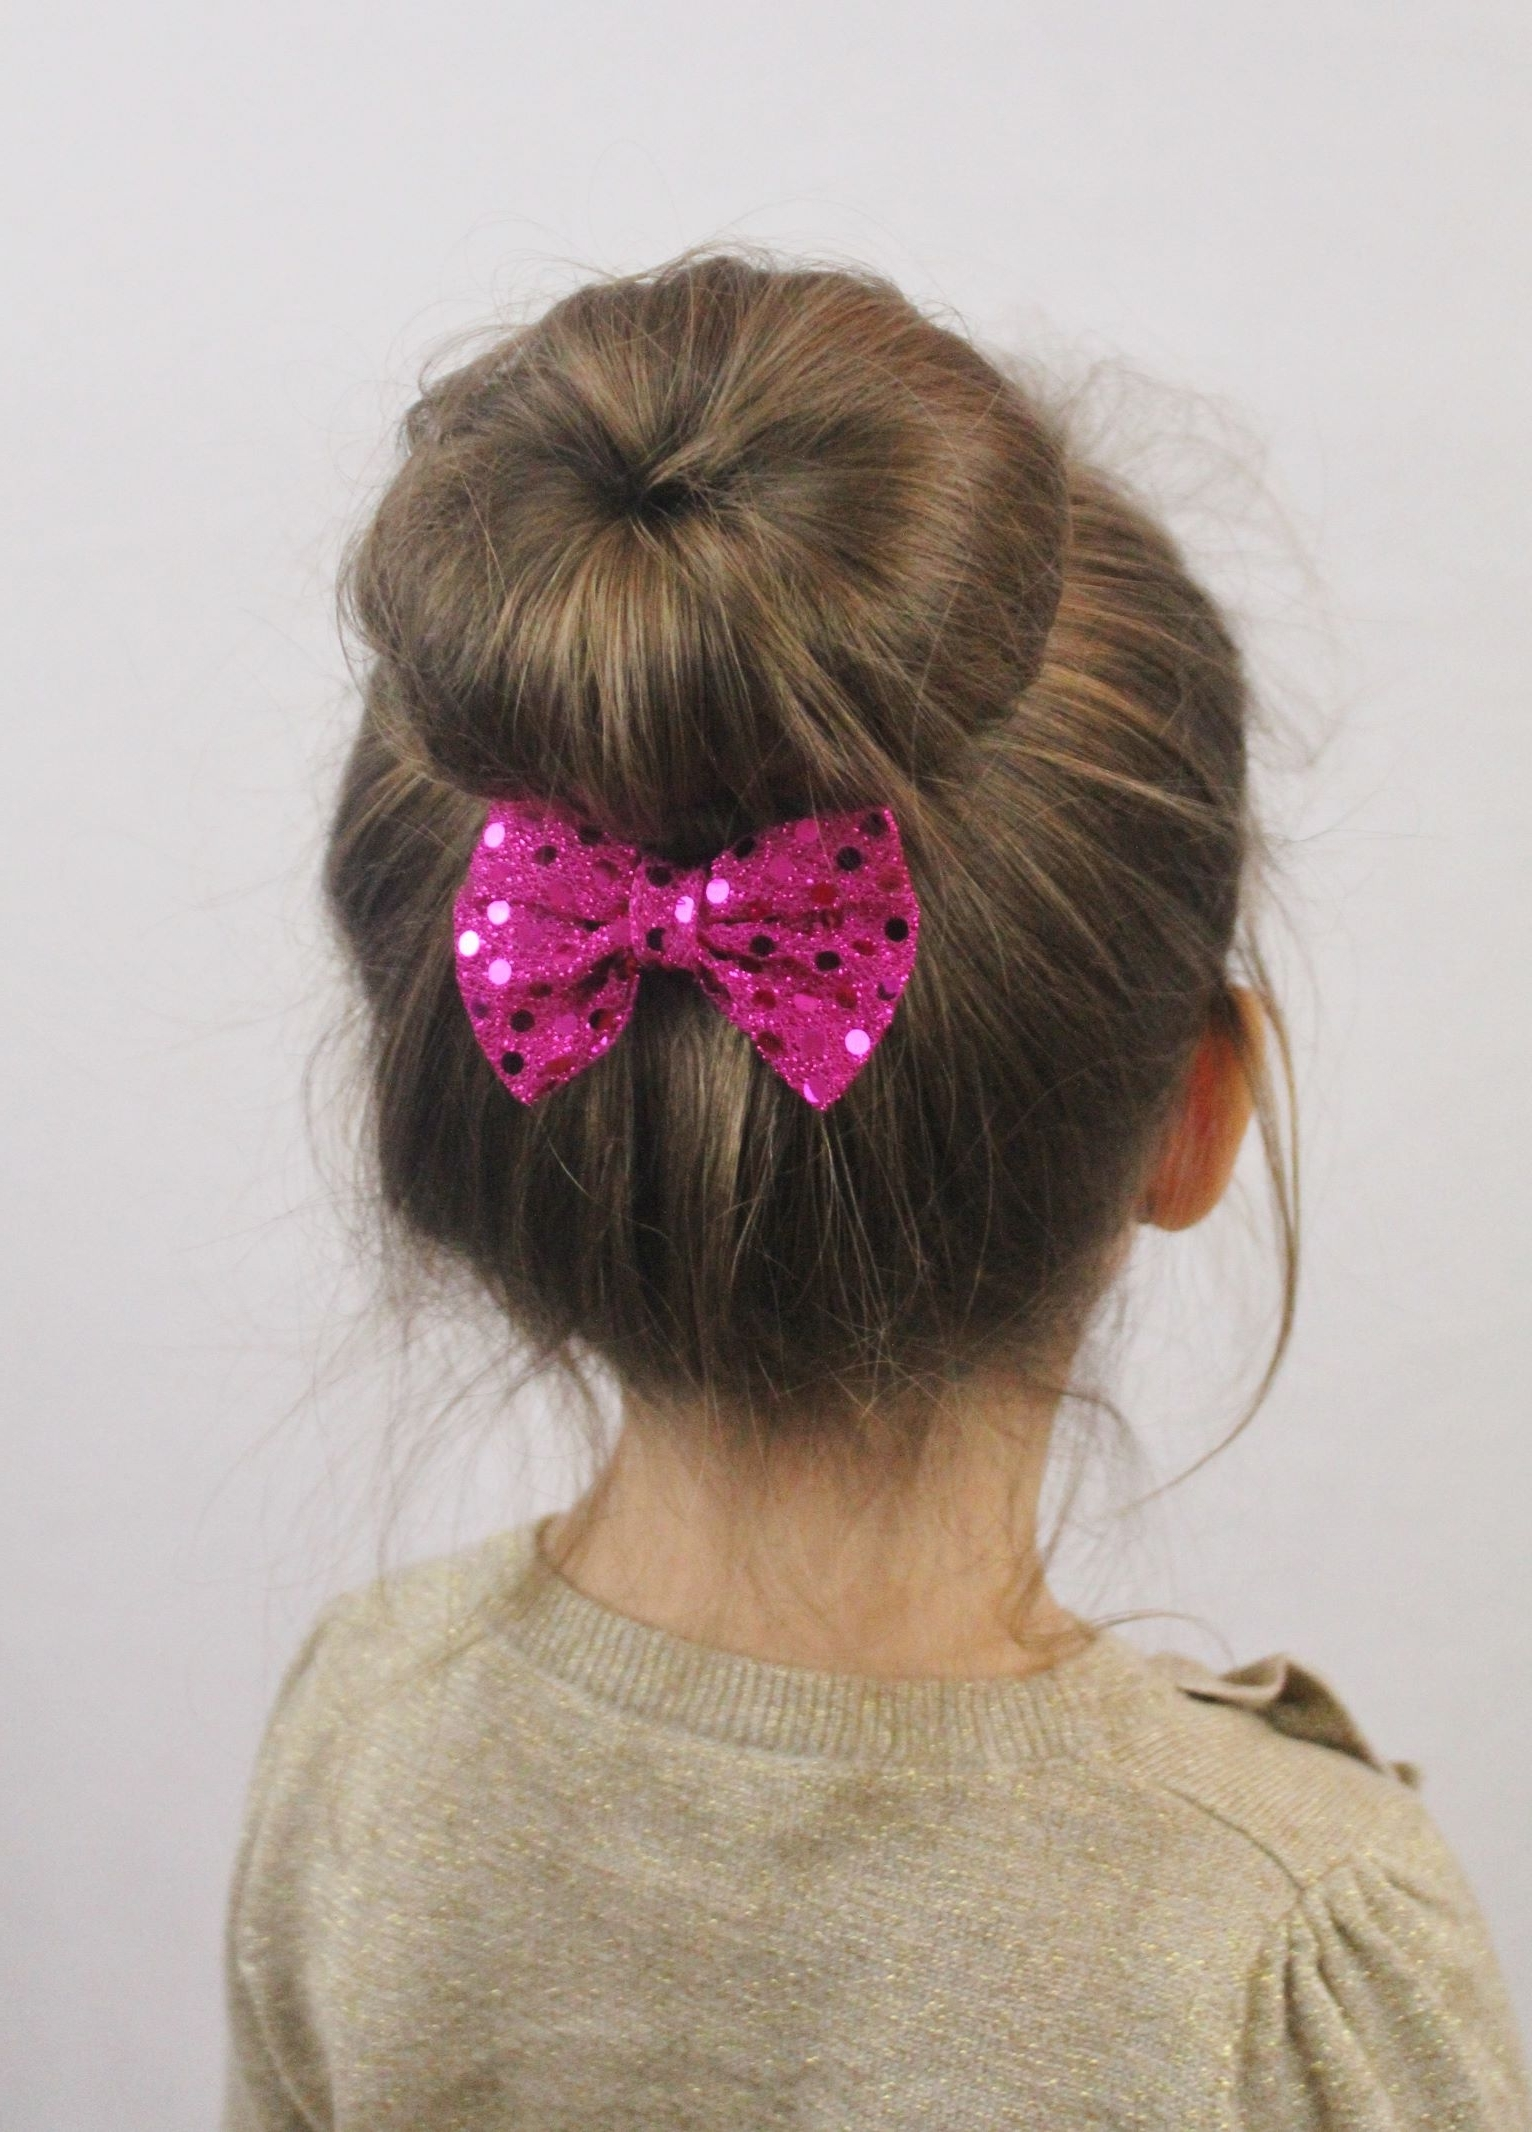 Top 10 Best Girl's Hairstyles For School   Sock Buns, Socks And With Easy Updo Hairstyles For Kids (View 12 of 15)